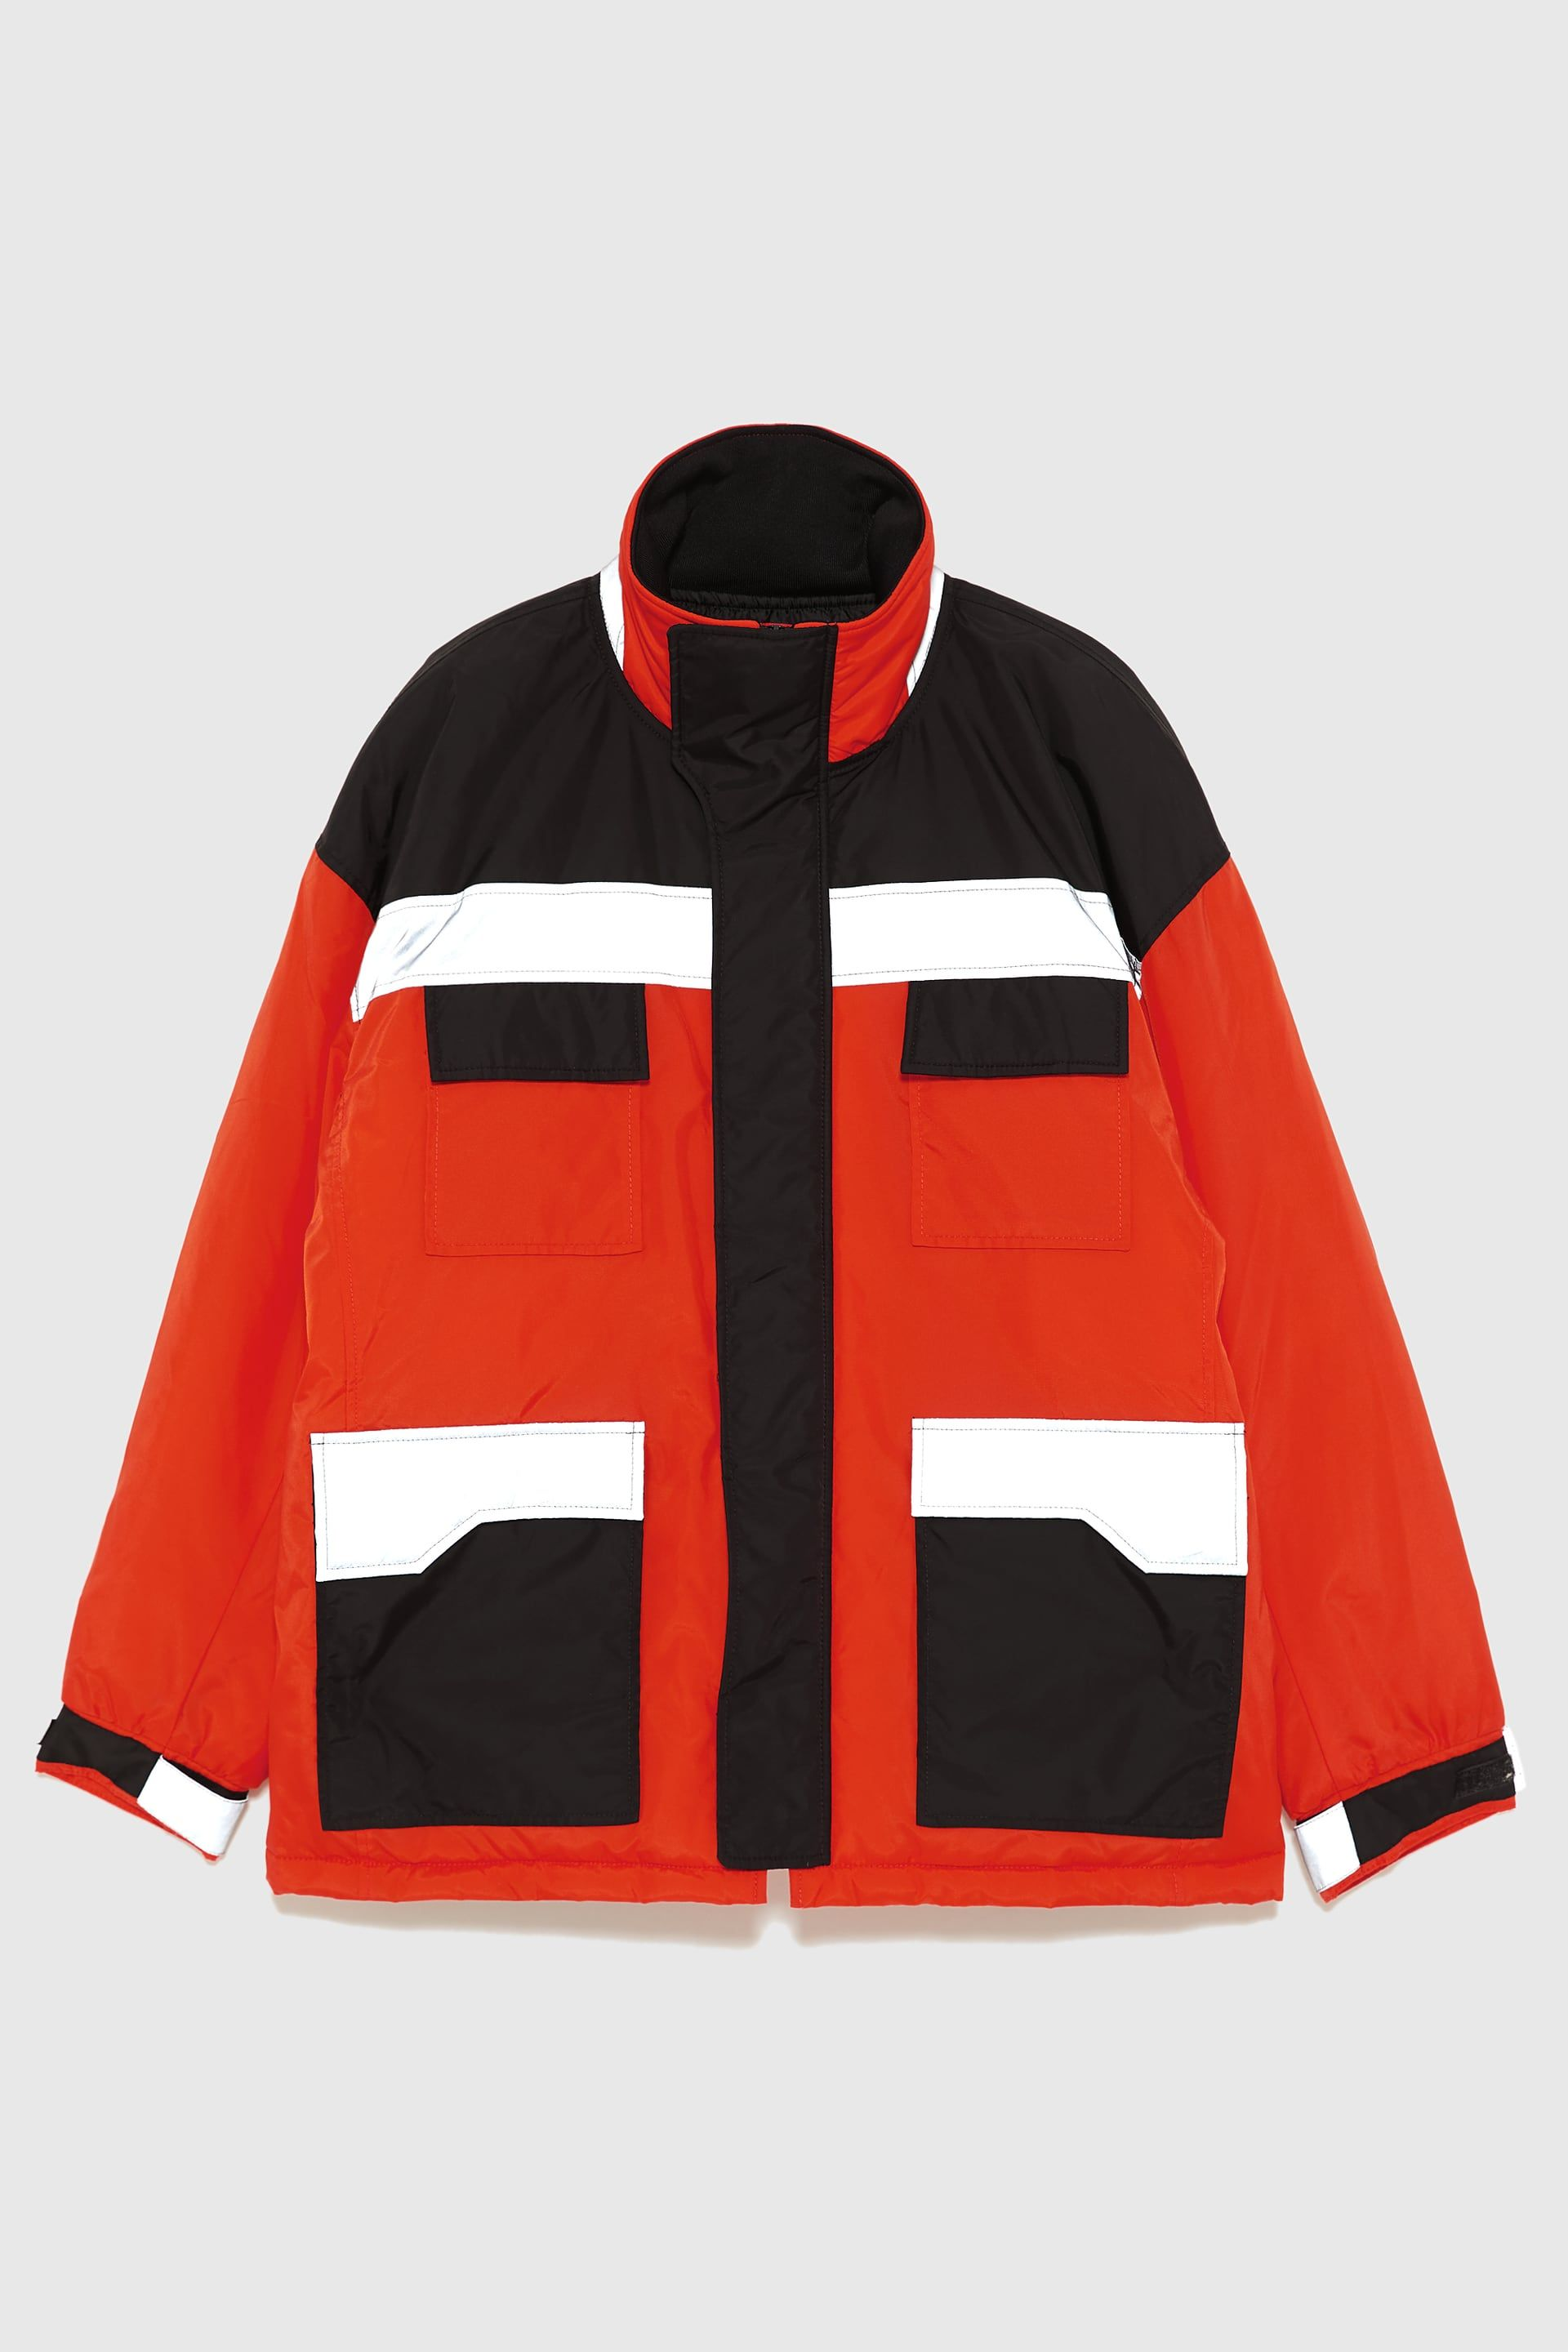 Image 6 Of Reflective Puffer Jacket From Zara Jackets Puffer Jackets Rain Jacket [ 2880 x 1920 Pixel ]